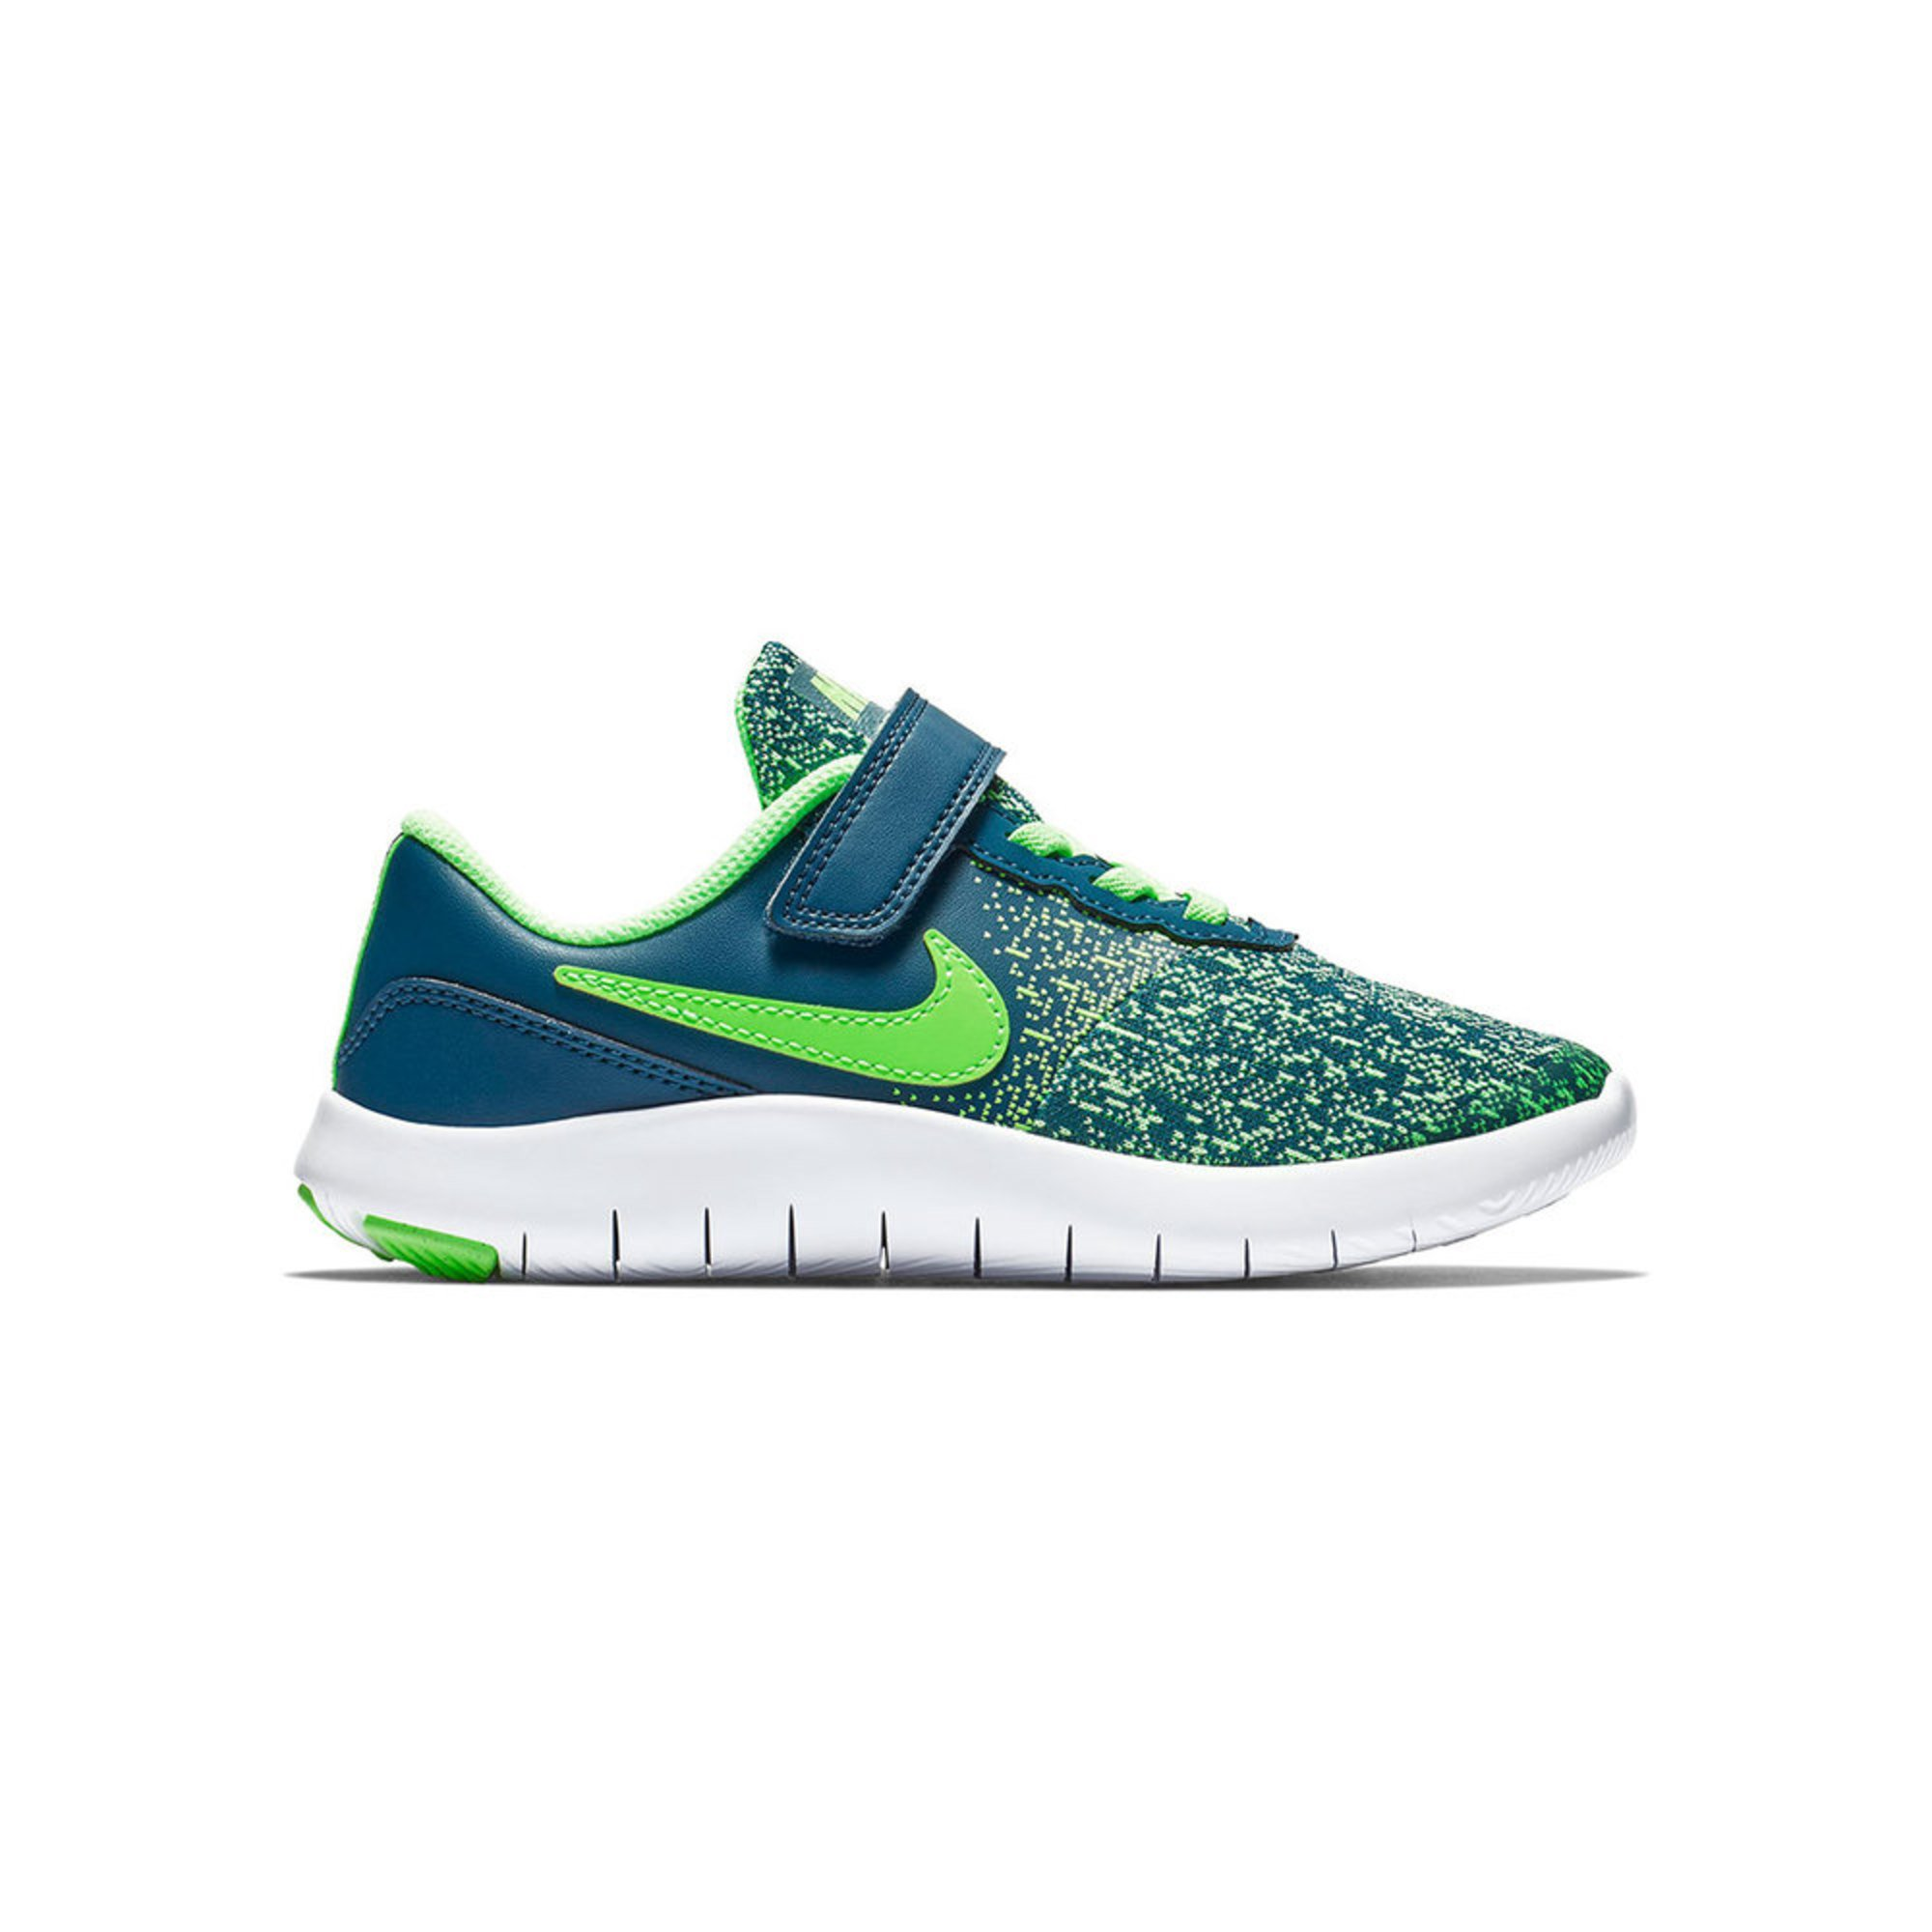 36b396baf10e3 Nike. Nike Boys Flex Contact Running Shoe (Little Kid)